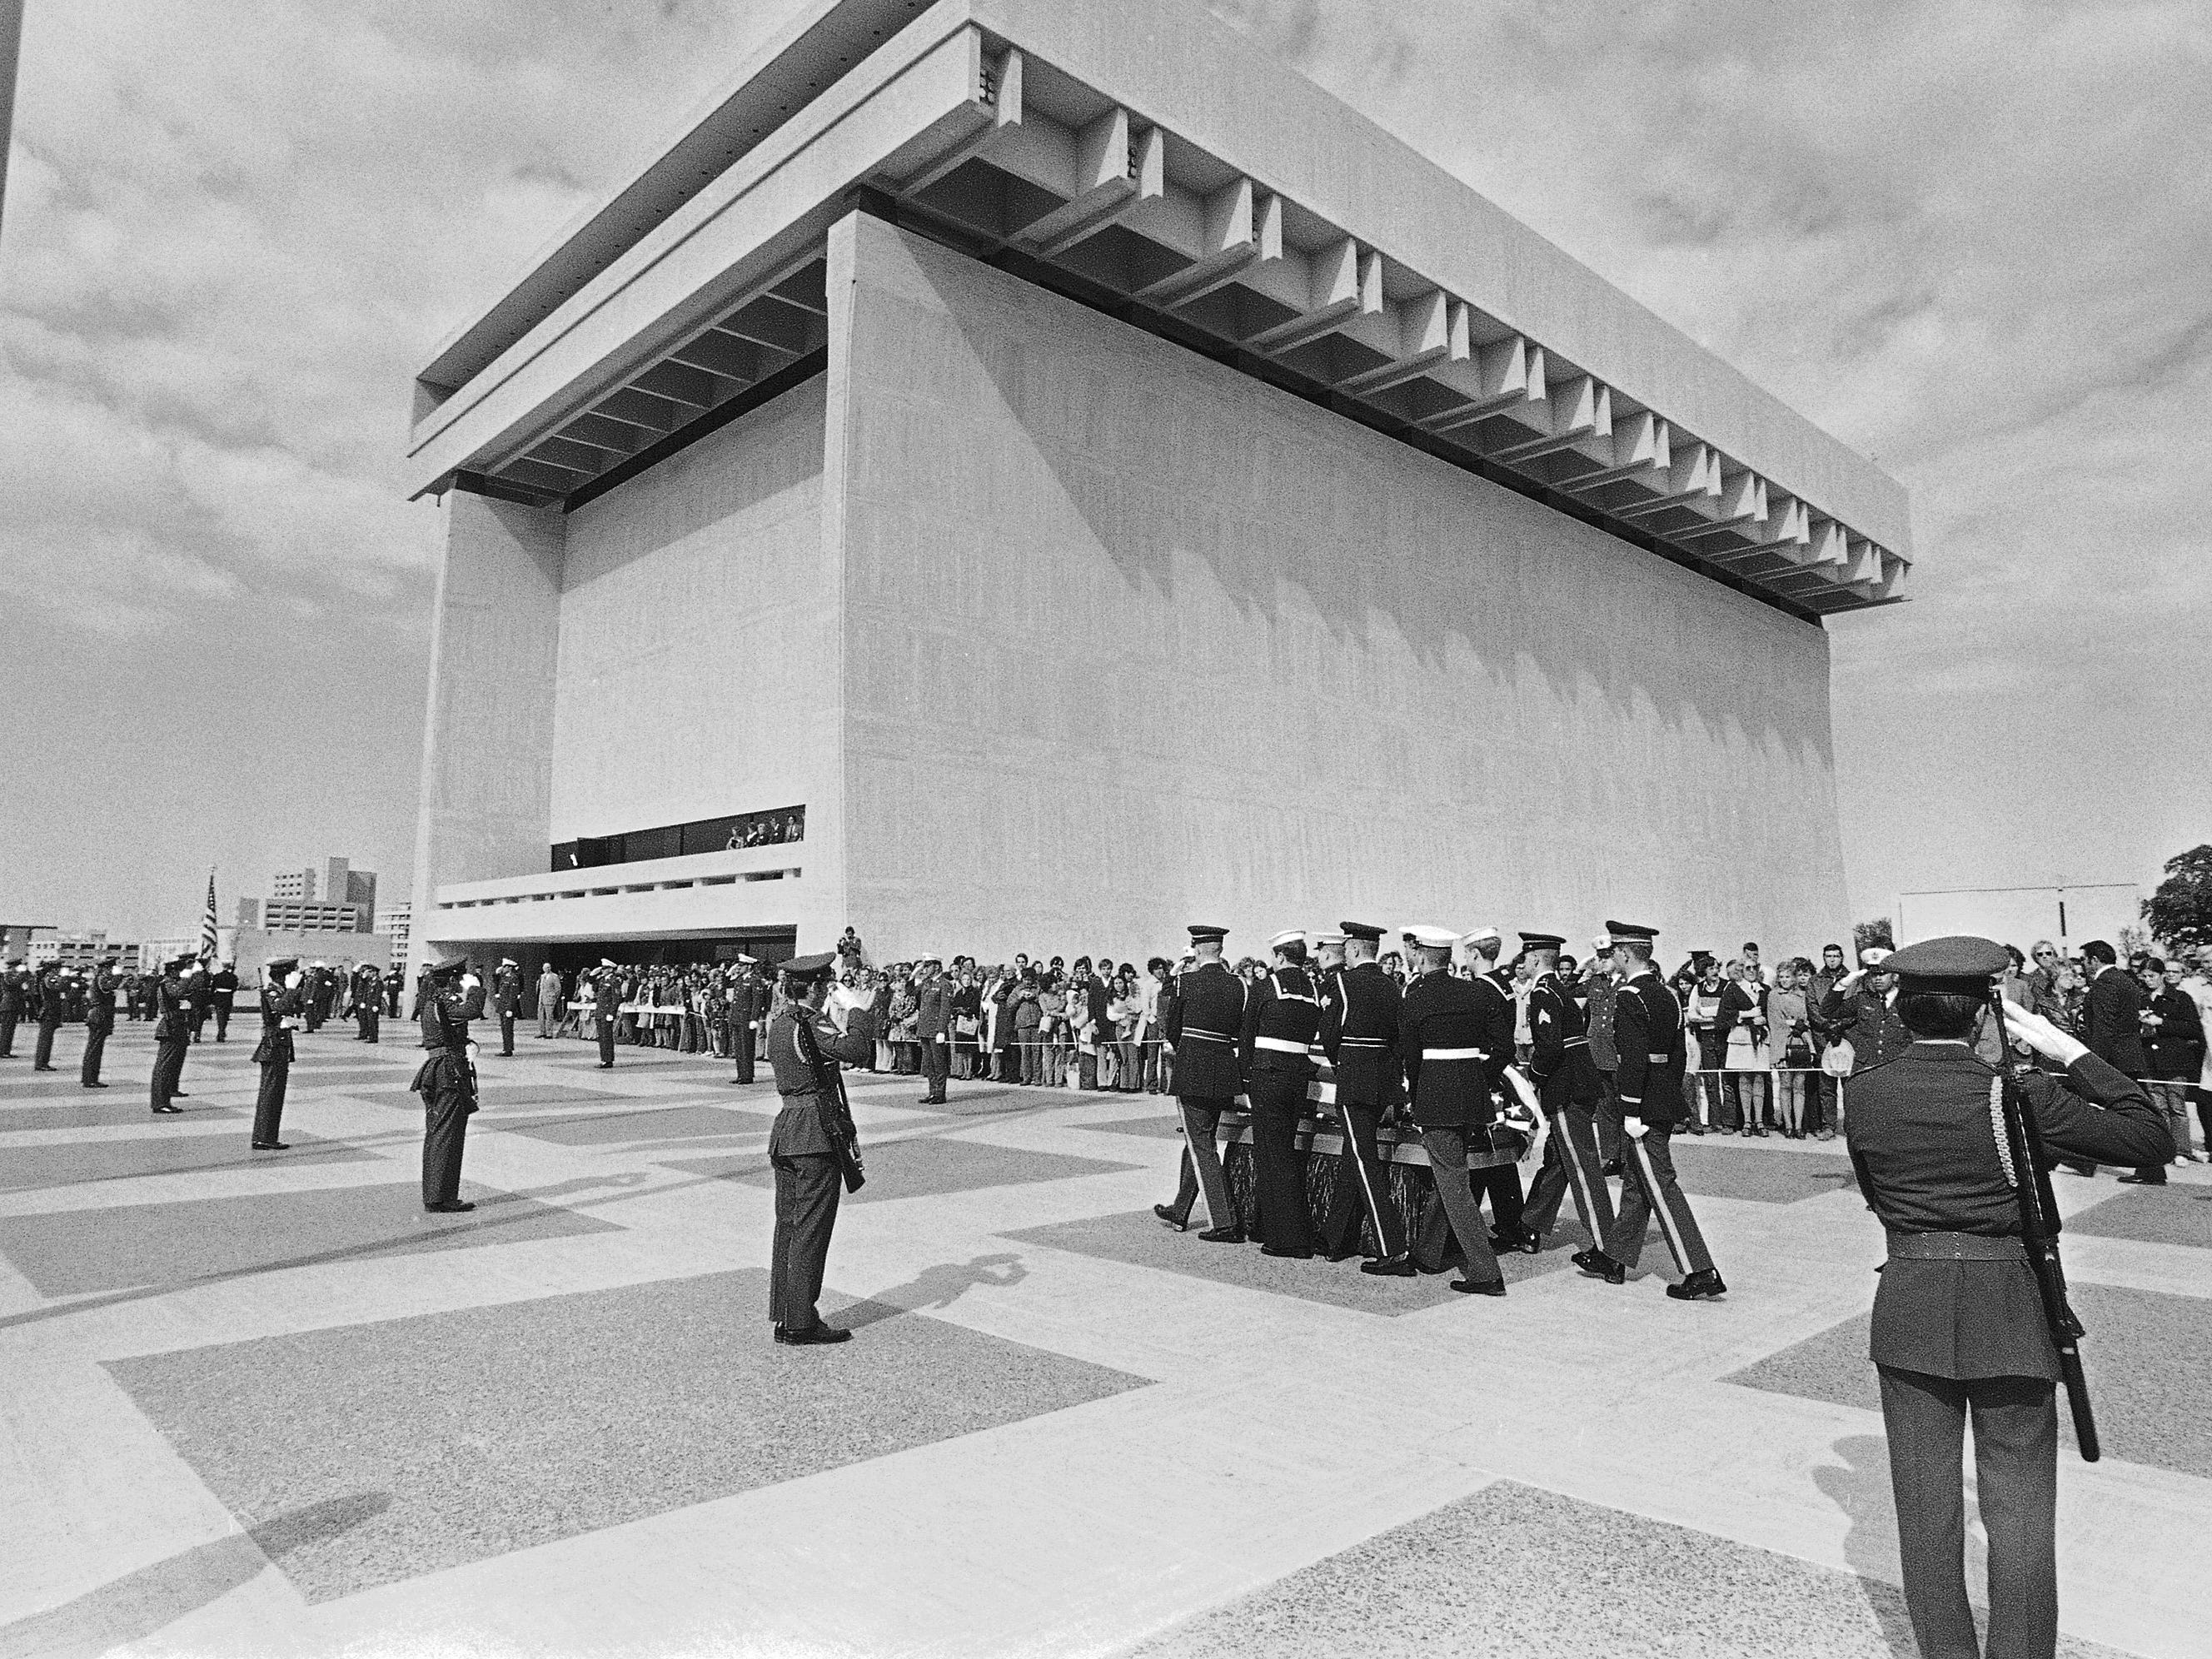 A military honor guard carries the casket of former President Lyndon B. Johnson toward the LBJ Library on the University of Texas campus in Austin, Texas on Jan. 23, 1973.